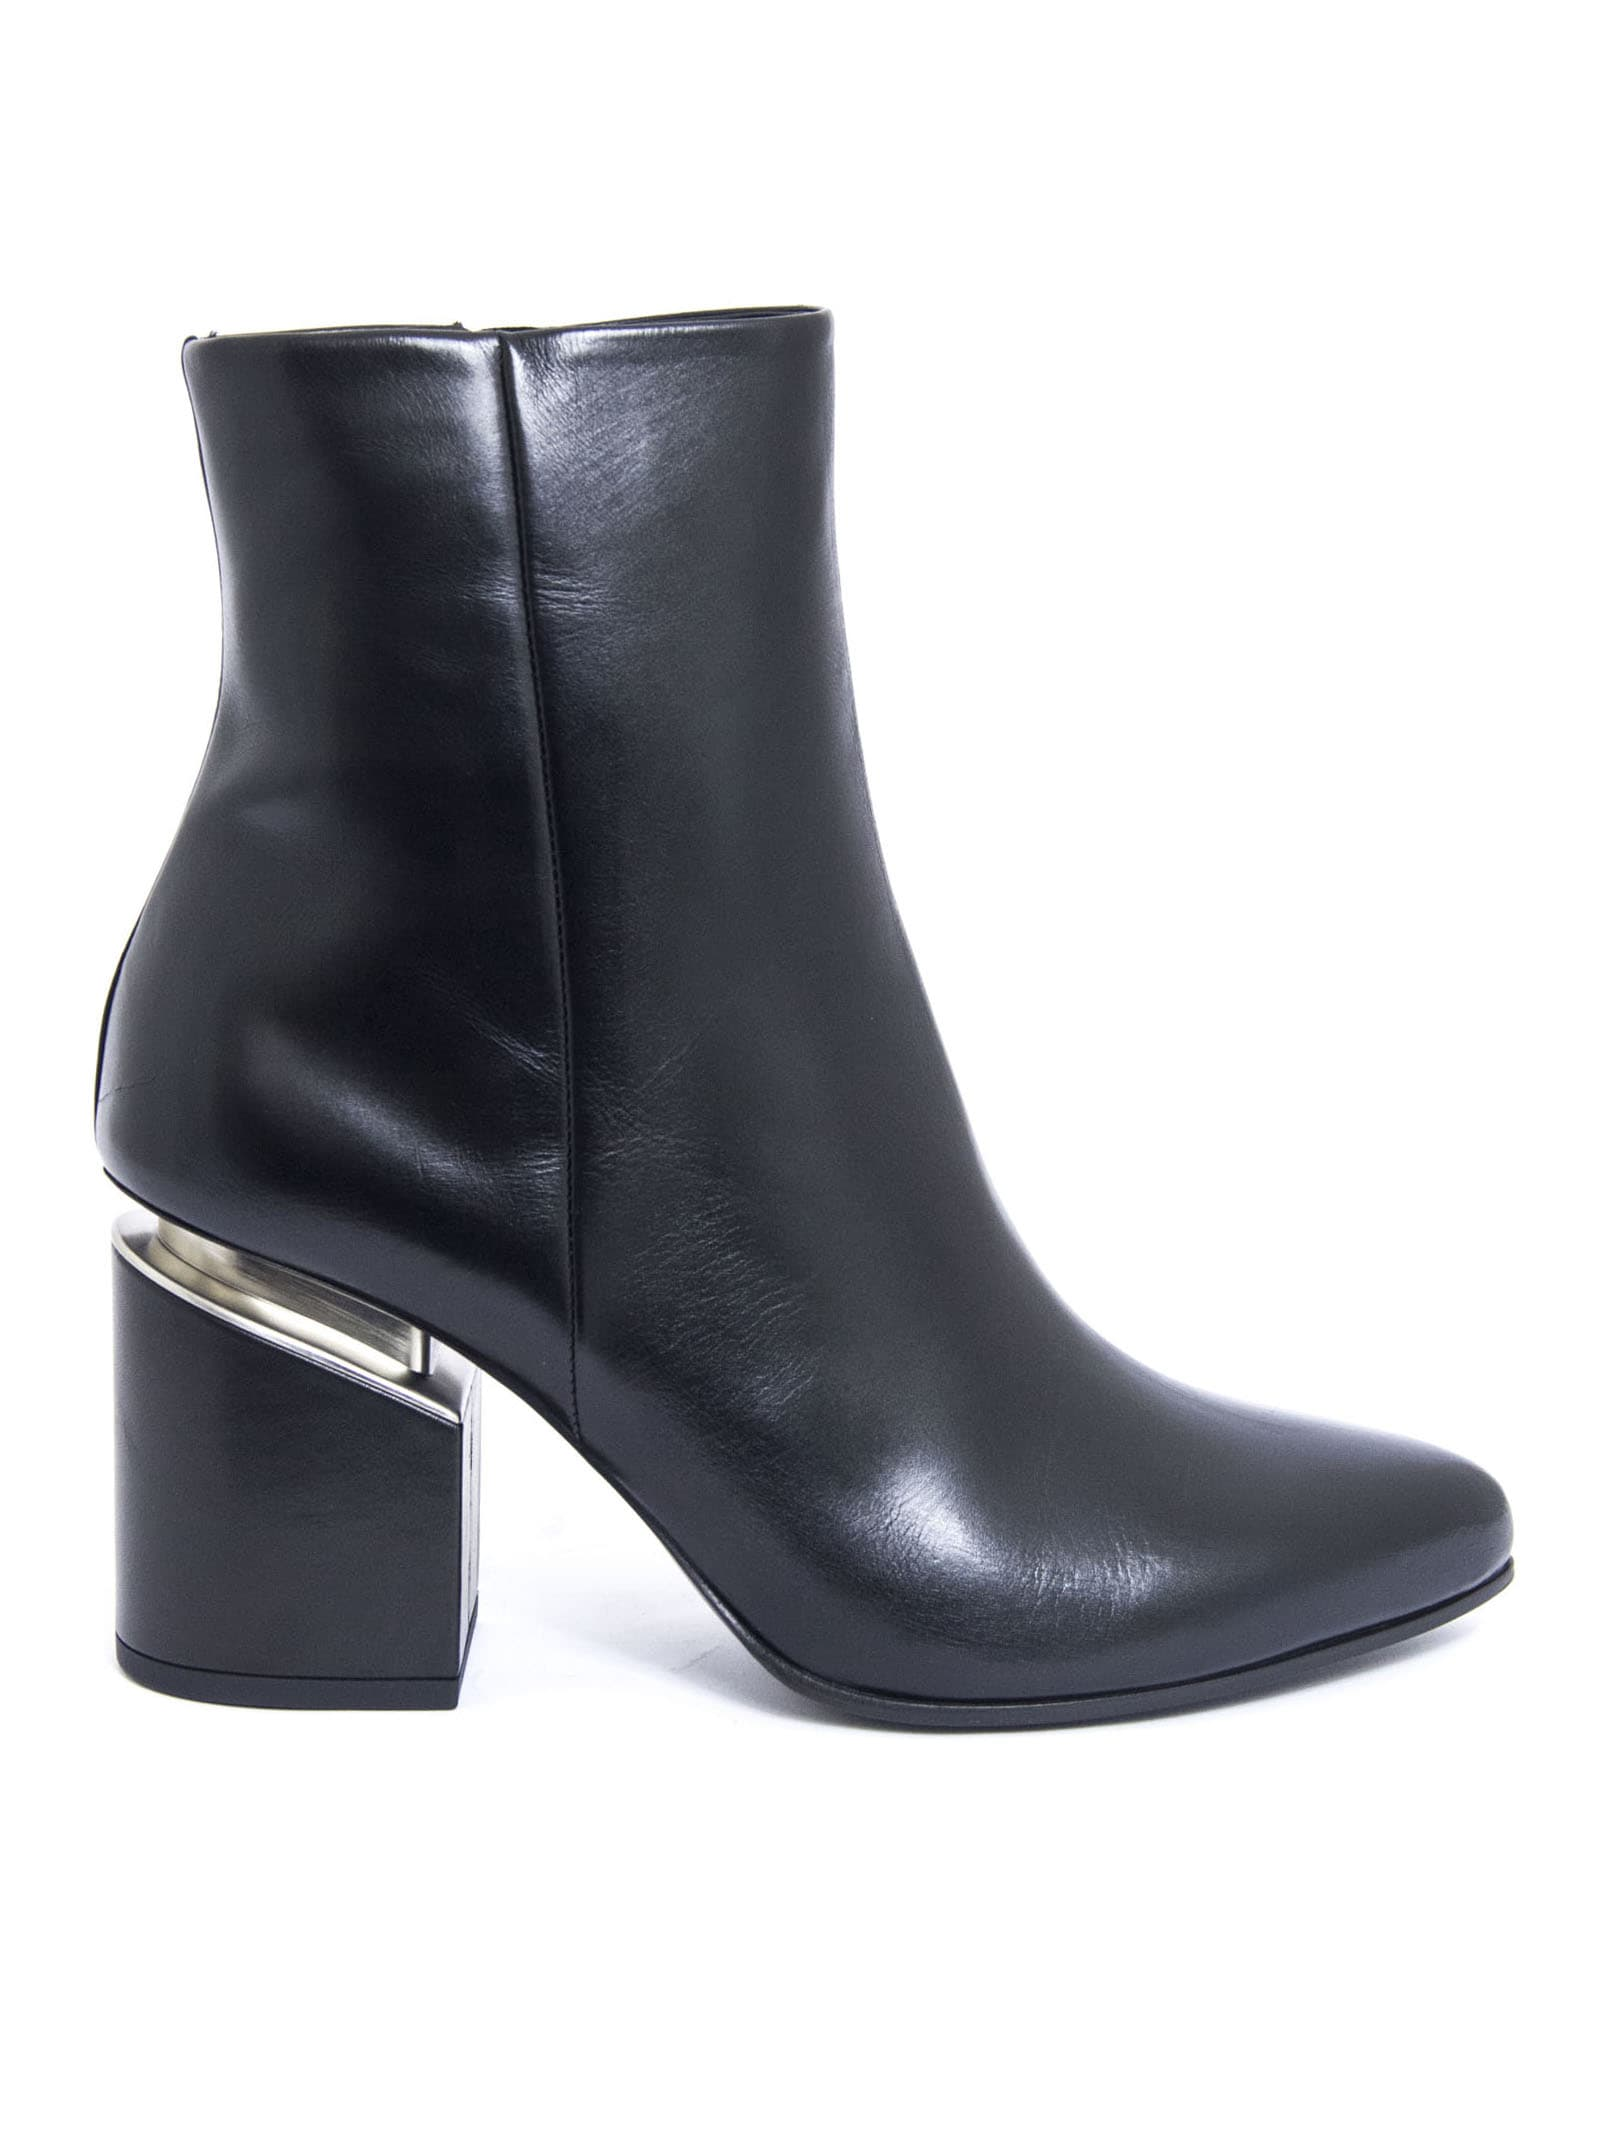 Vic Matie Black Leather Ankle Boot In Nero